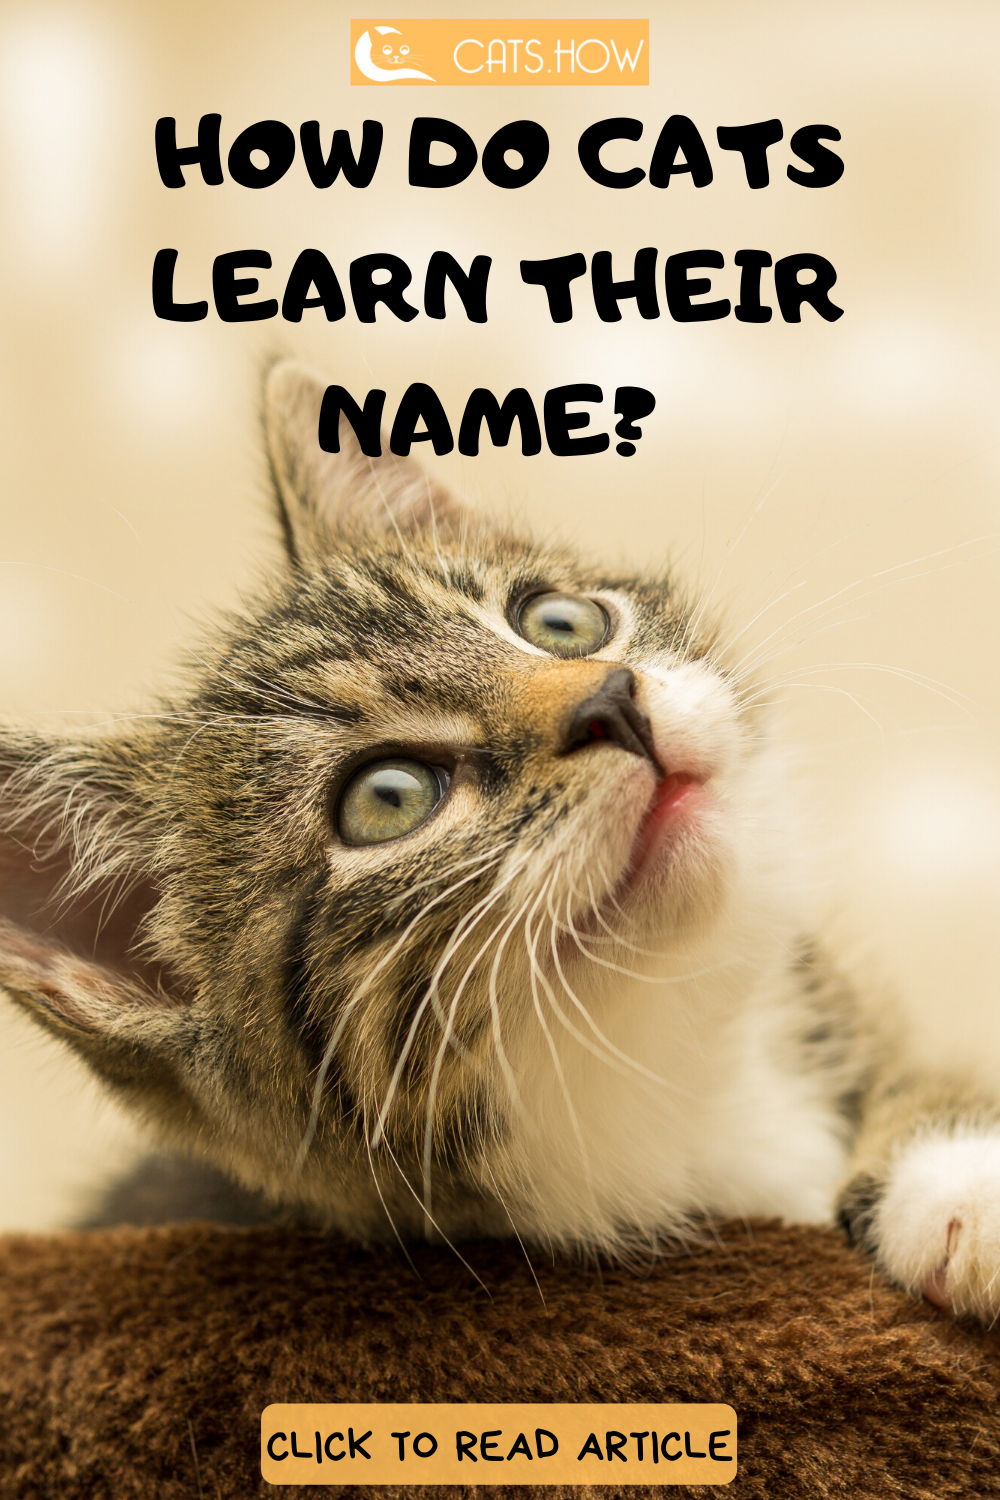 How Do Cats Learn Their Name (With images) Cats, Cat facts